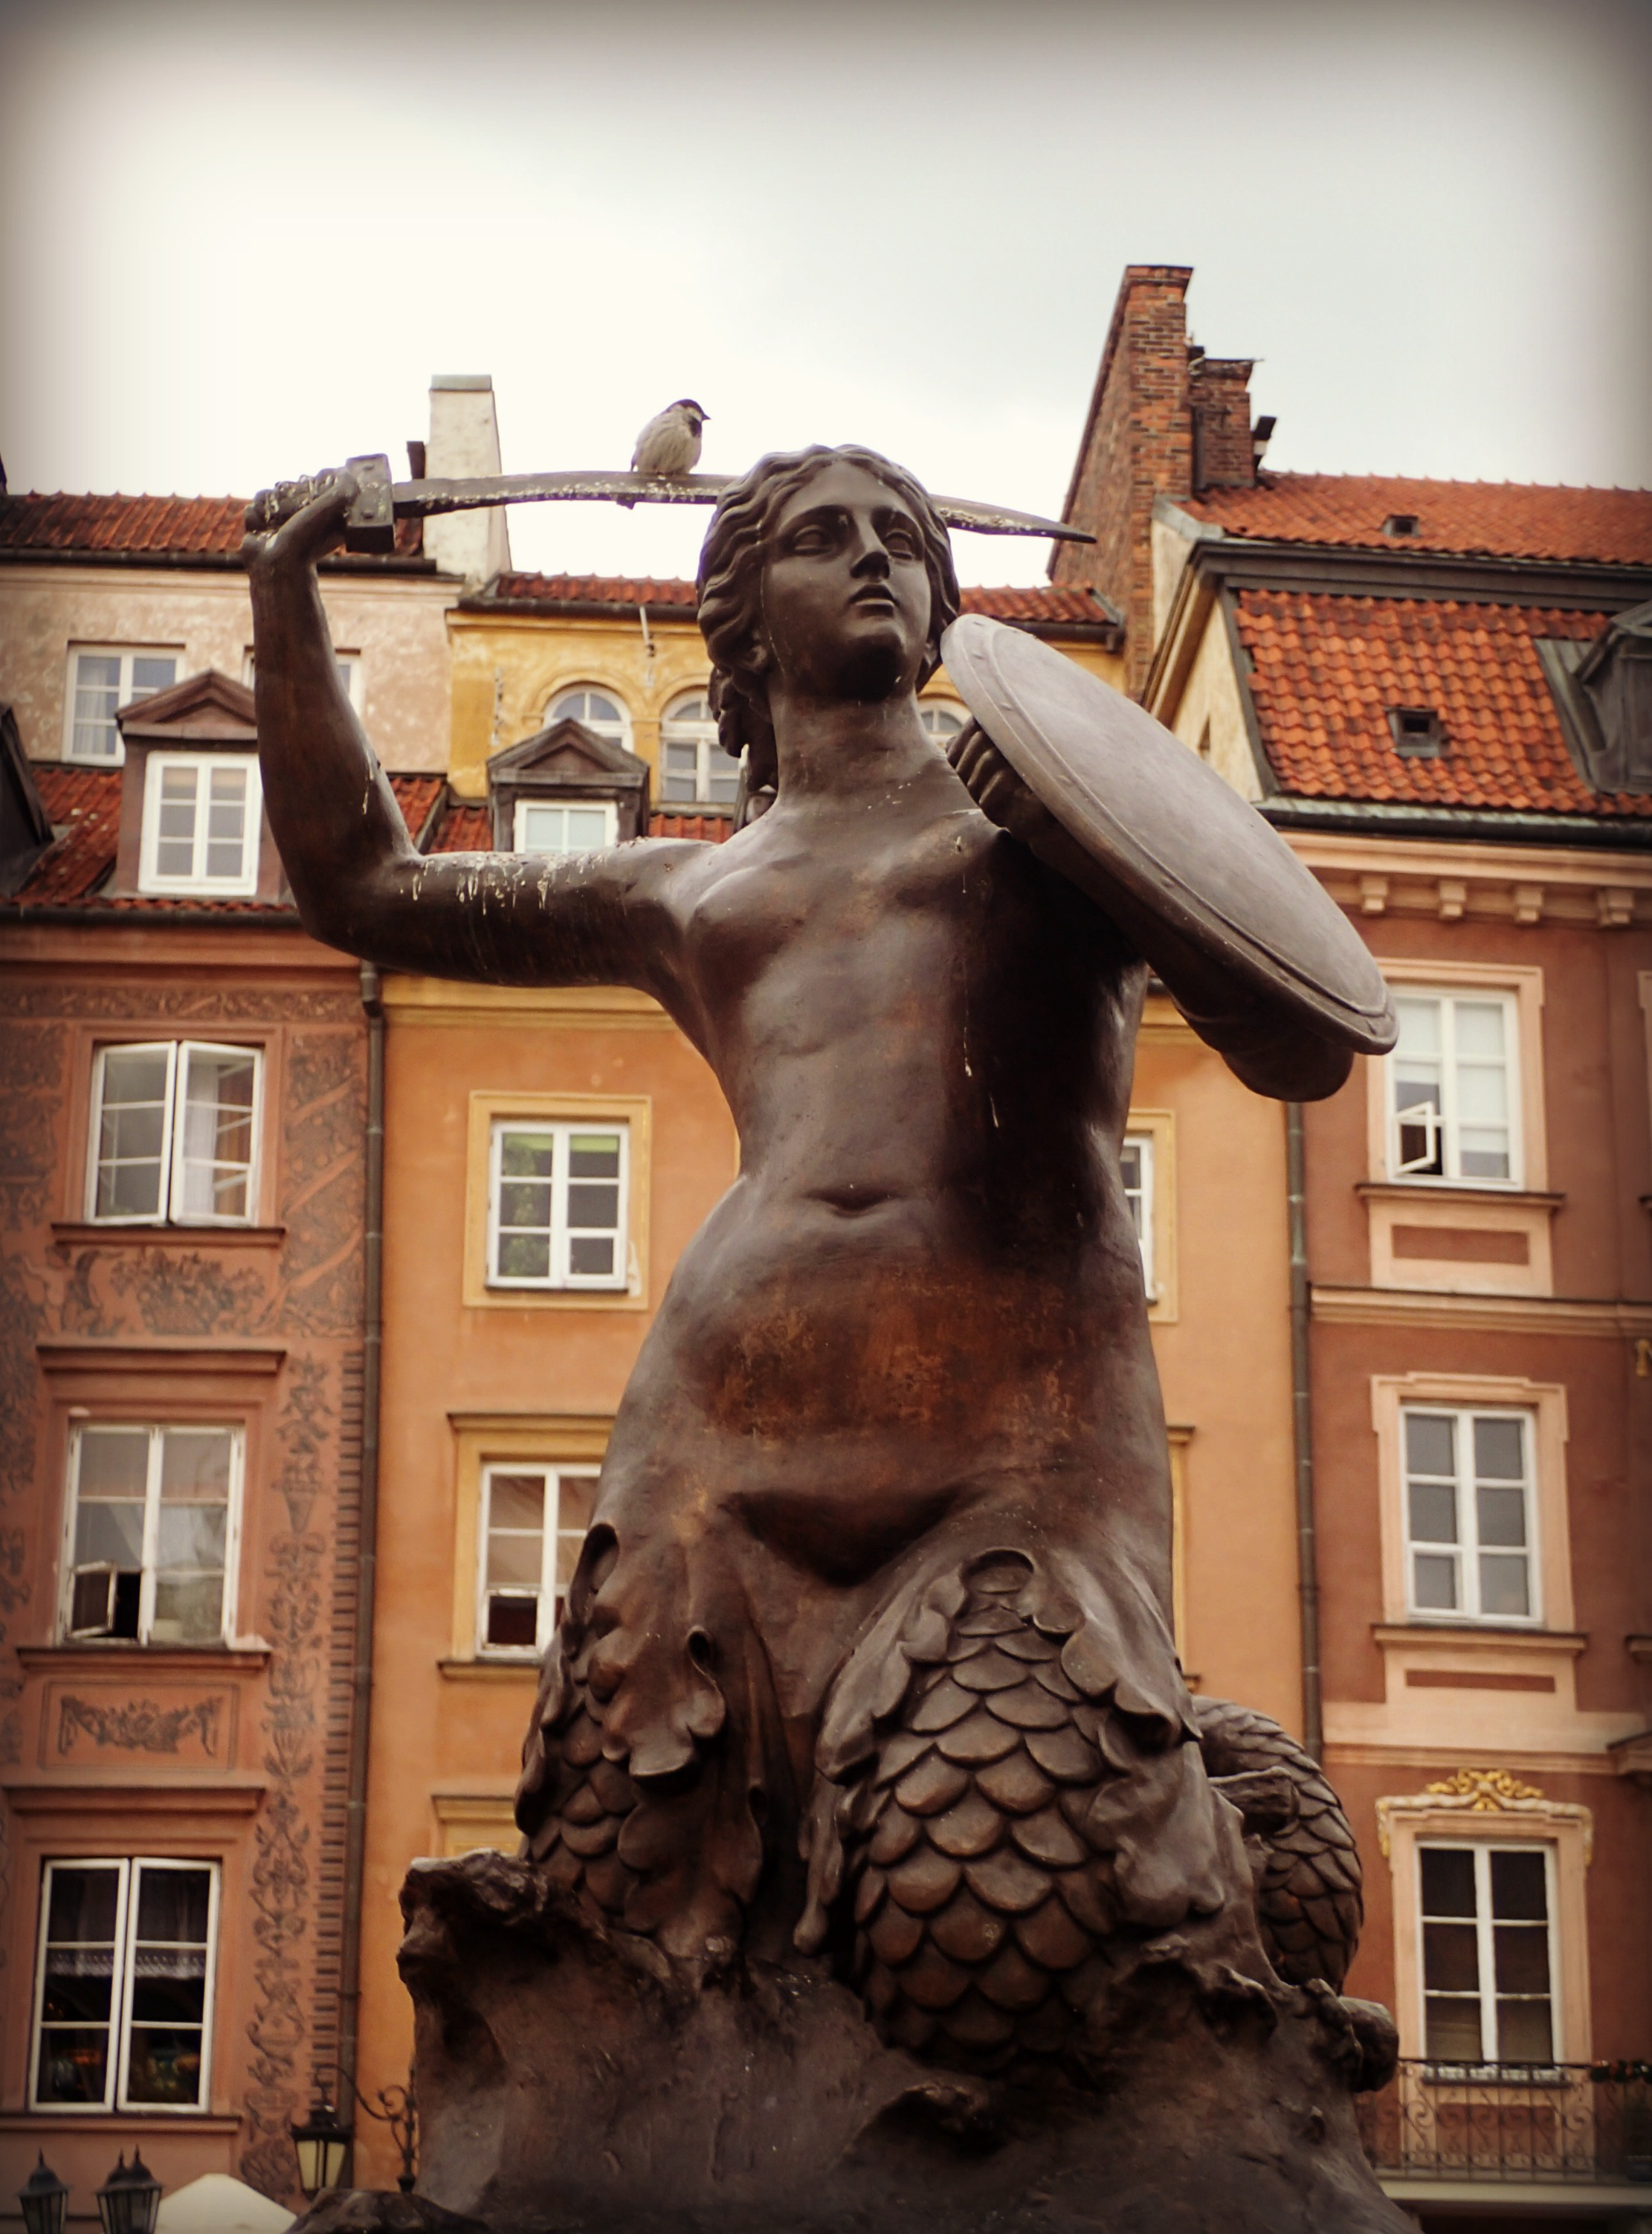 Statue of the Syrenka (Mermaid)